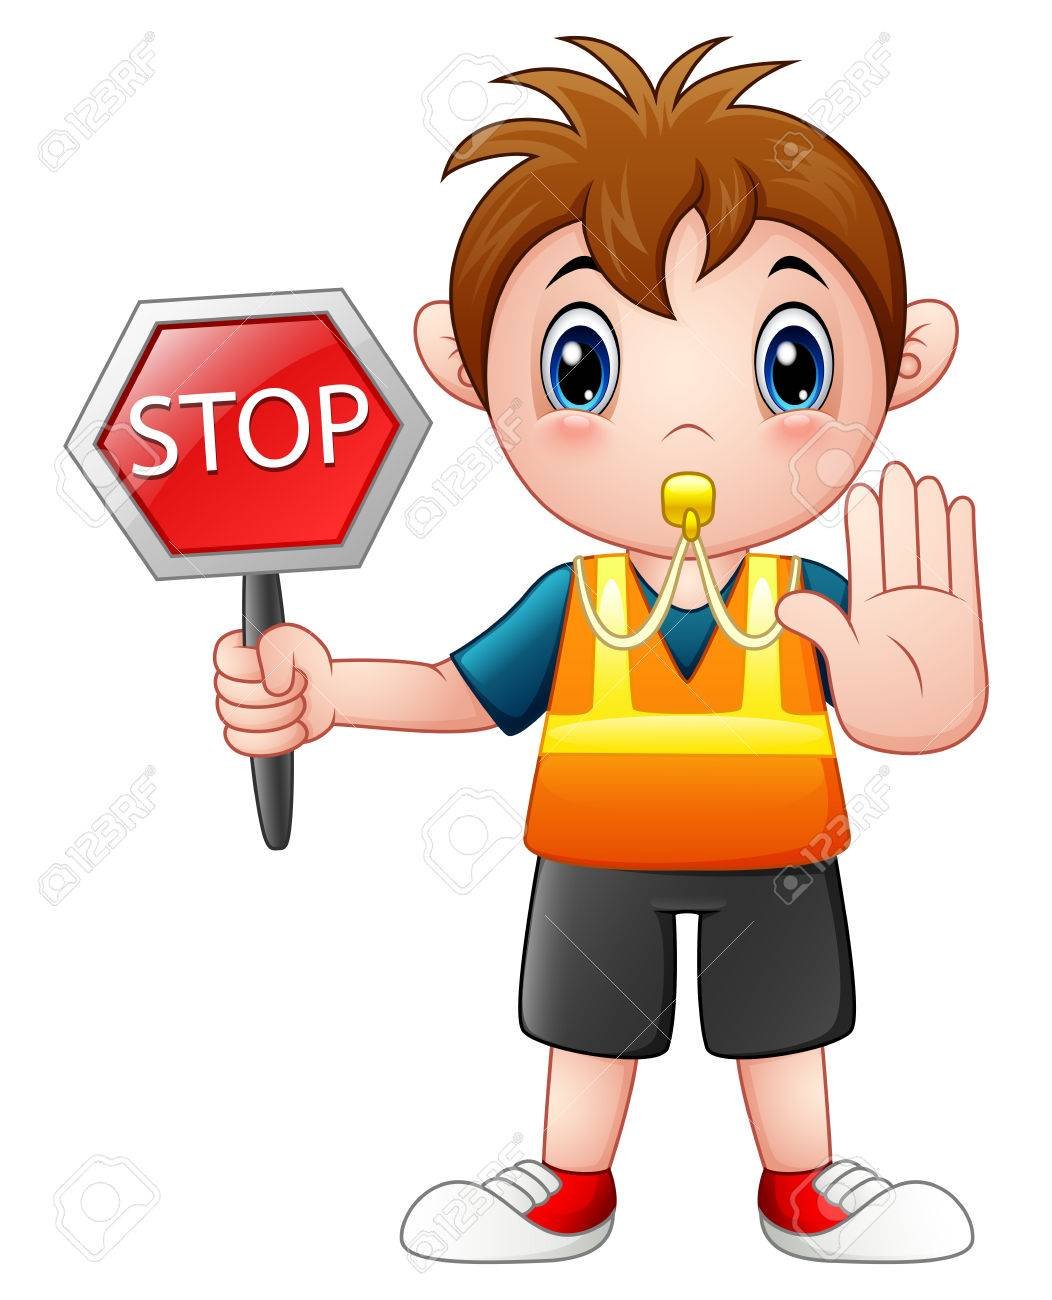 cartoon boy holding a stop sign stock photo picture and royalty rh 123rf com animated stop sign cartoon animated stop sign cartoon